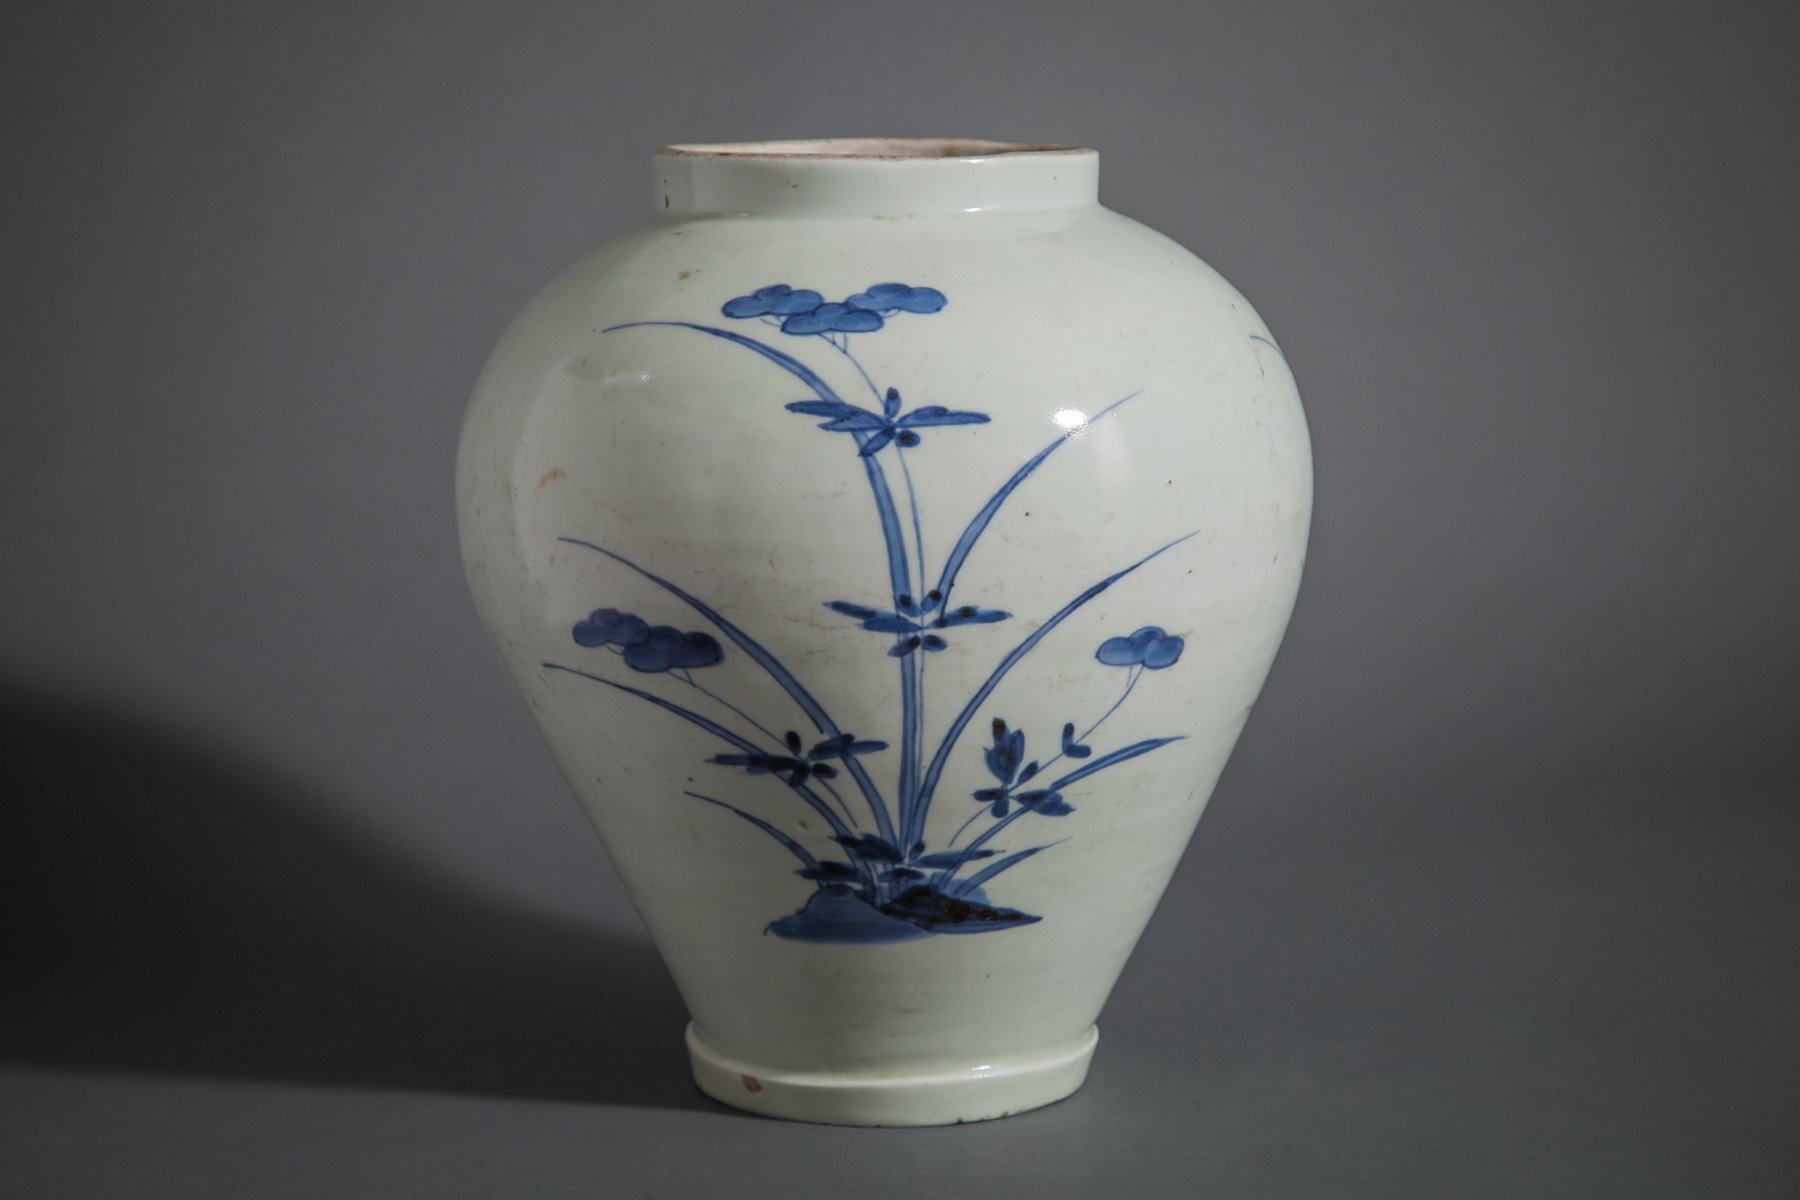 Blue and White Imari Jar (Tsubo)